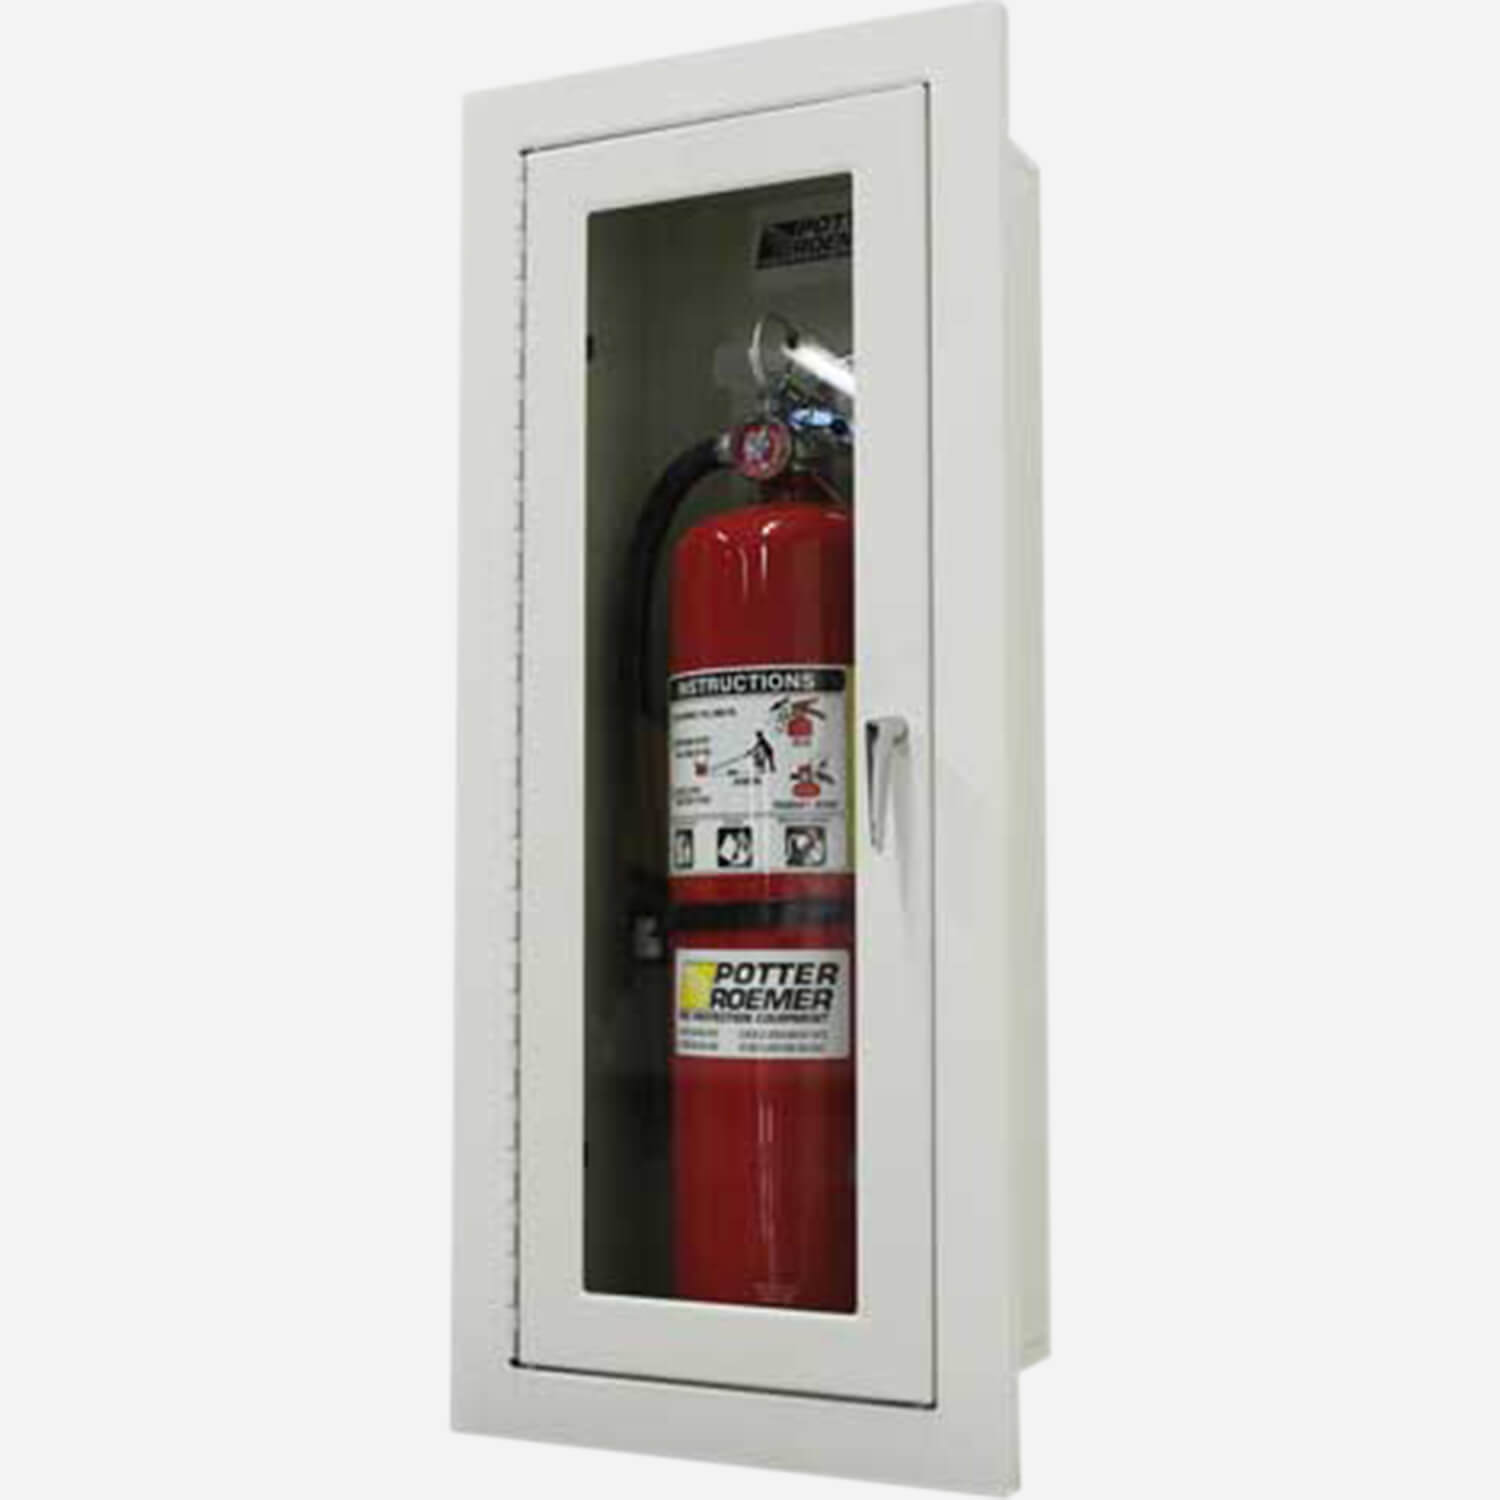 Recessed Alta Fire Extinguisher Cabinets - Potter Roemer